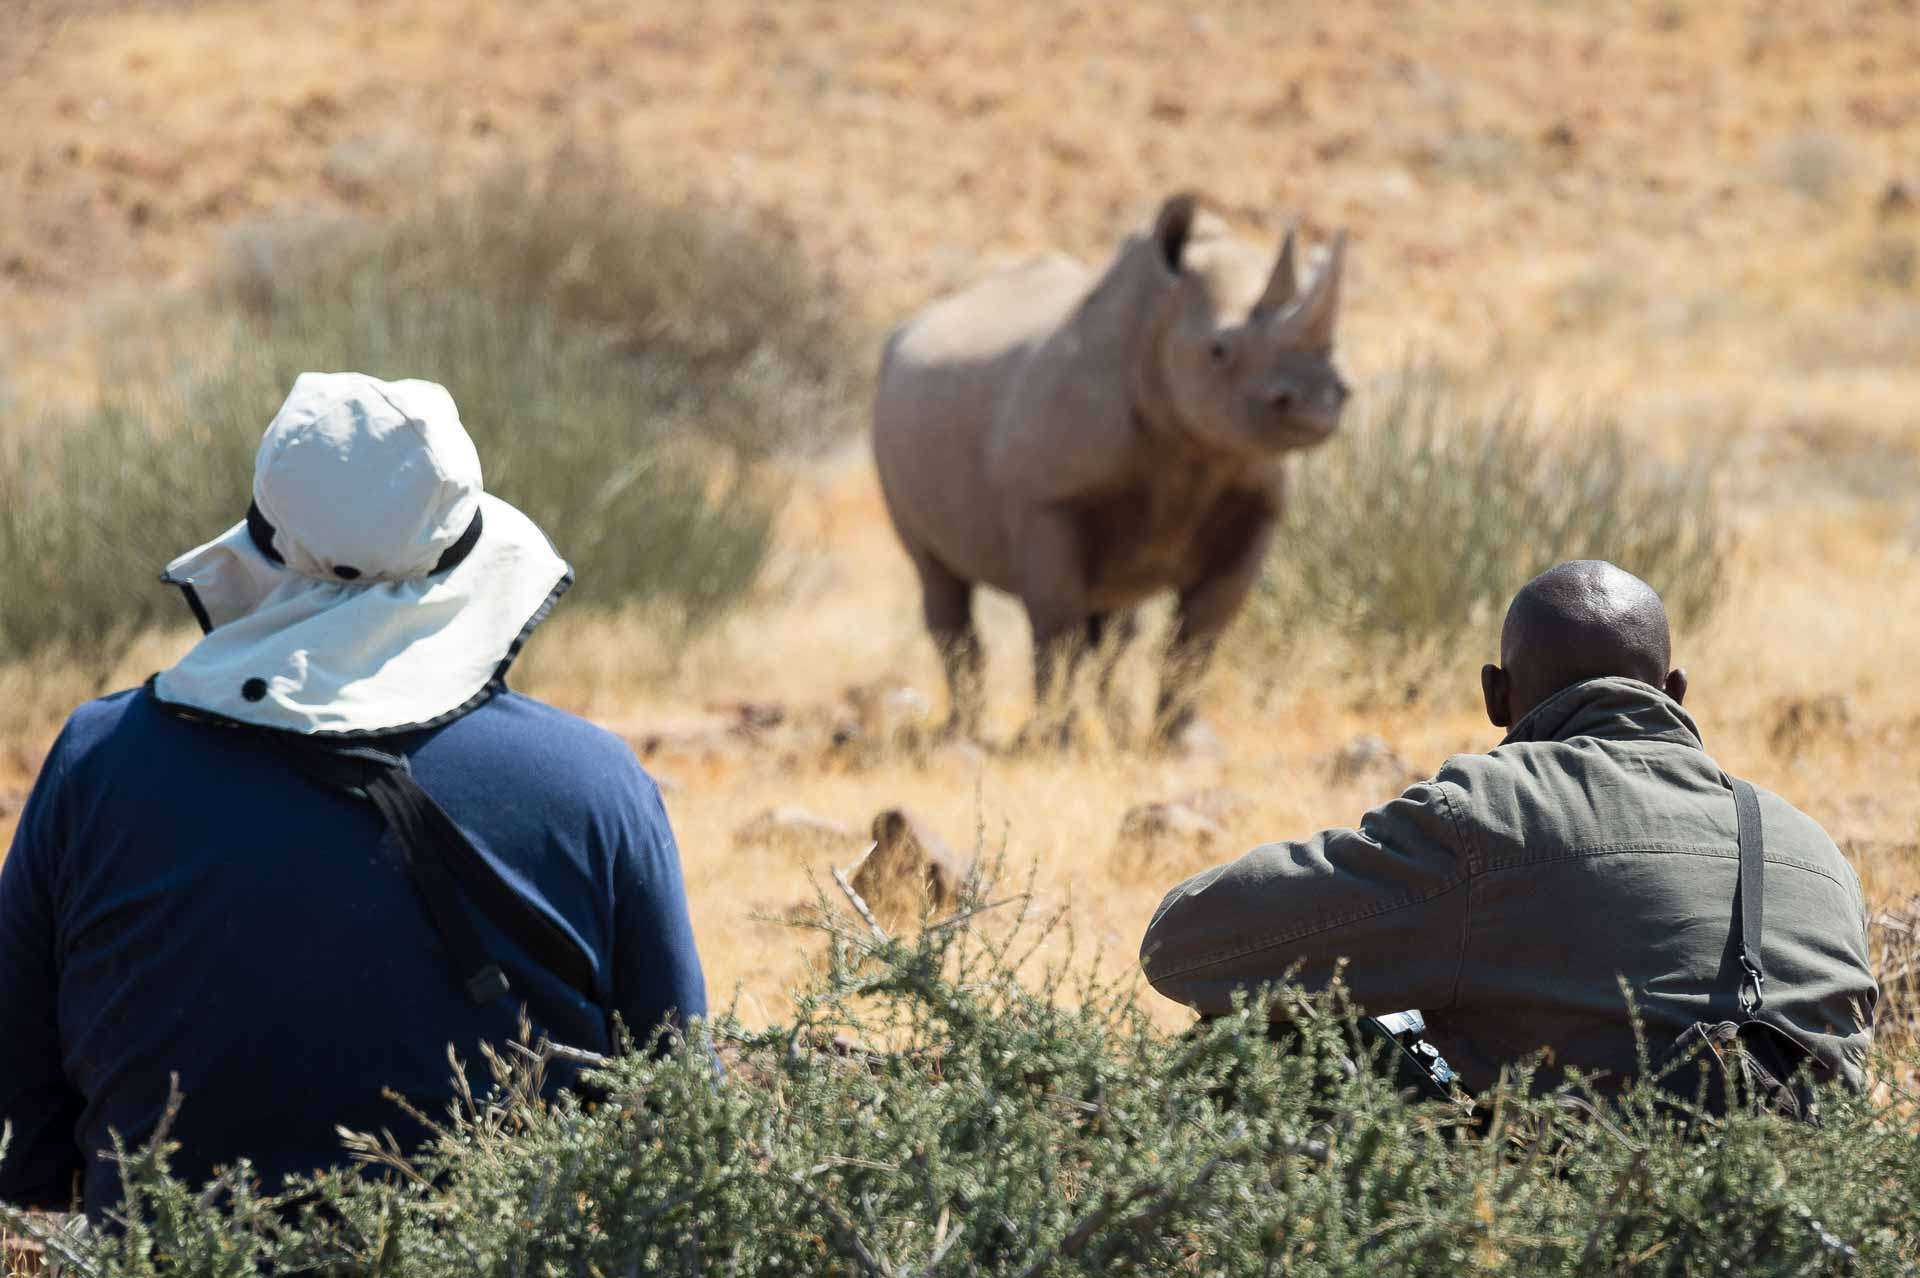 enkosi-africa-safari-namibia-damaraland-desert-rhino-camp-wildernes-walking